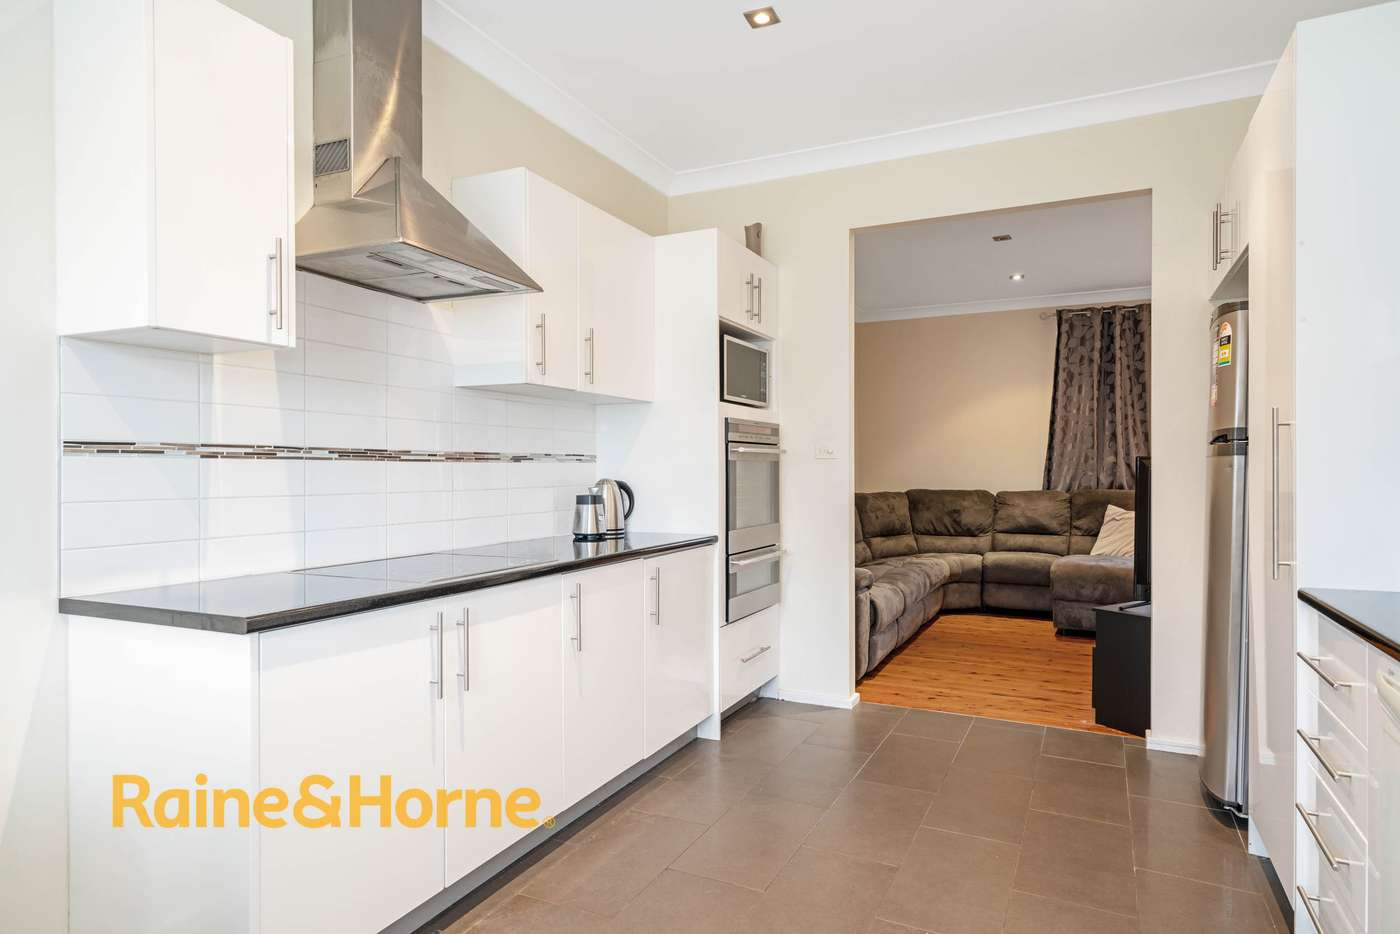 Fifth view of Homely house listing, 20 Elliott Street, Kingswood NSW 2747